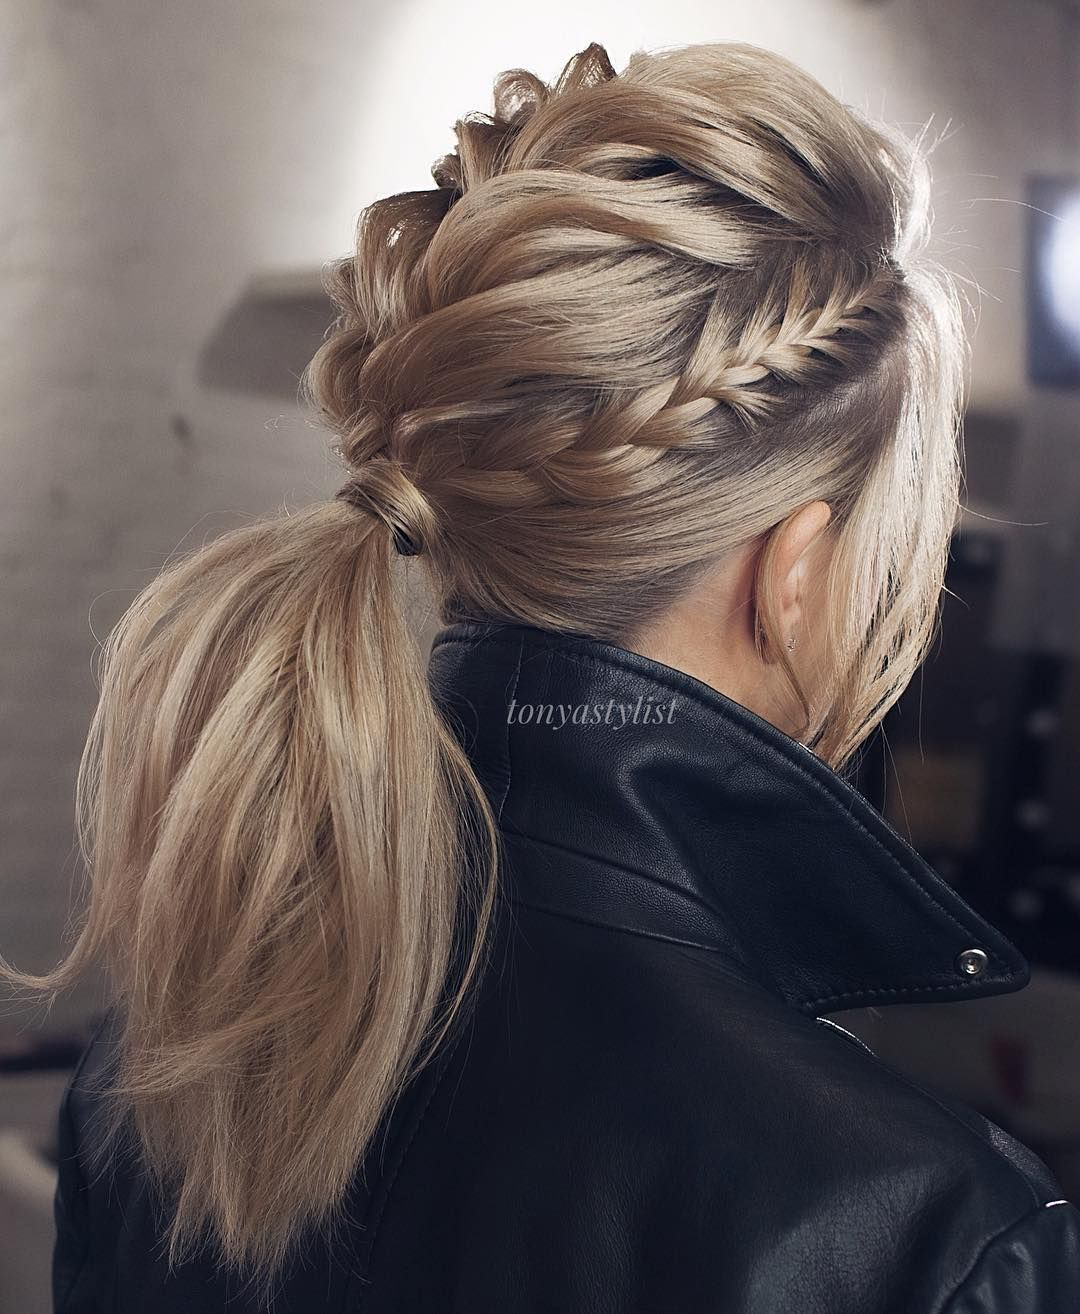 Pin by karyna pinon on hairstyles pinterest hair style makeup